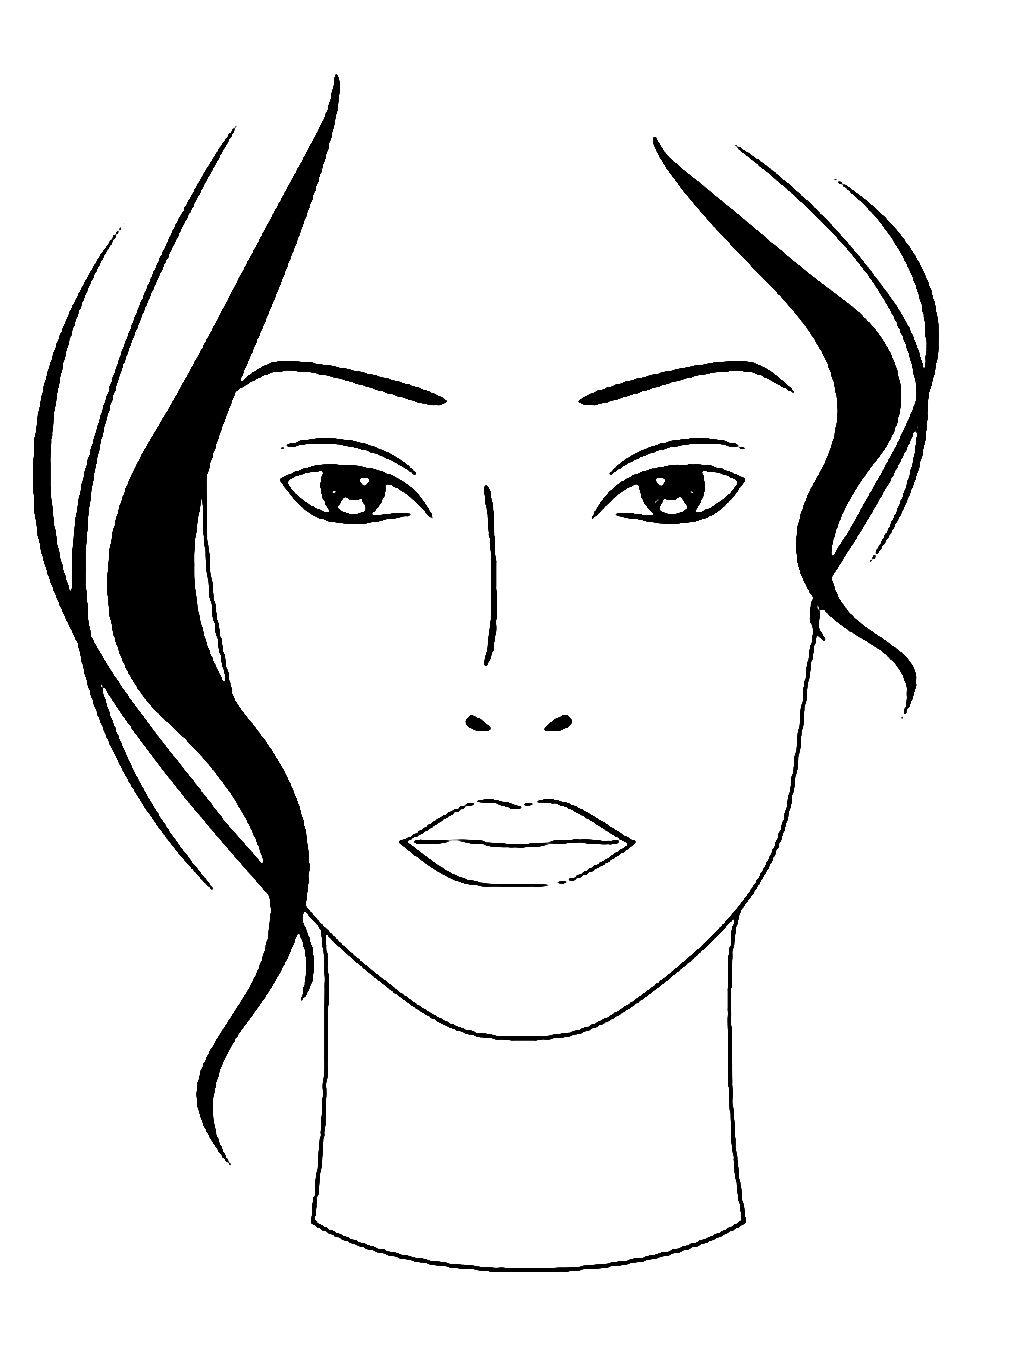 Face chart on Pinterest | 15 Pins